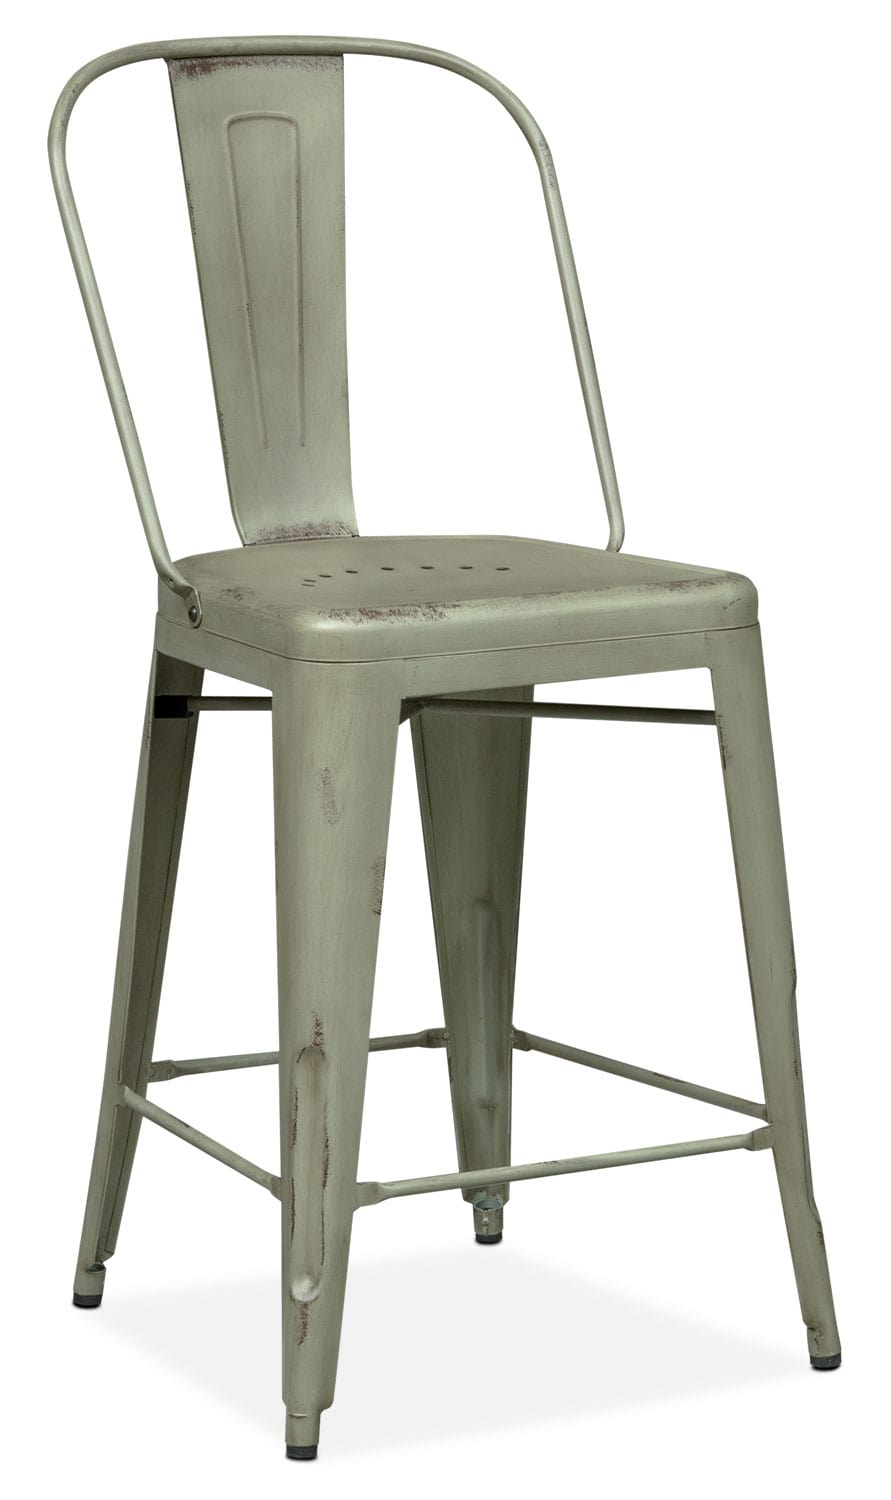 Dining Room Furniture - Olin Splat-Back Counter-Height Stool - Green